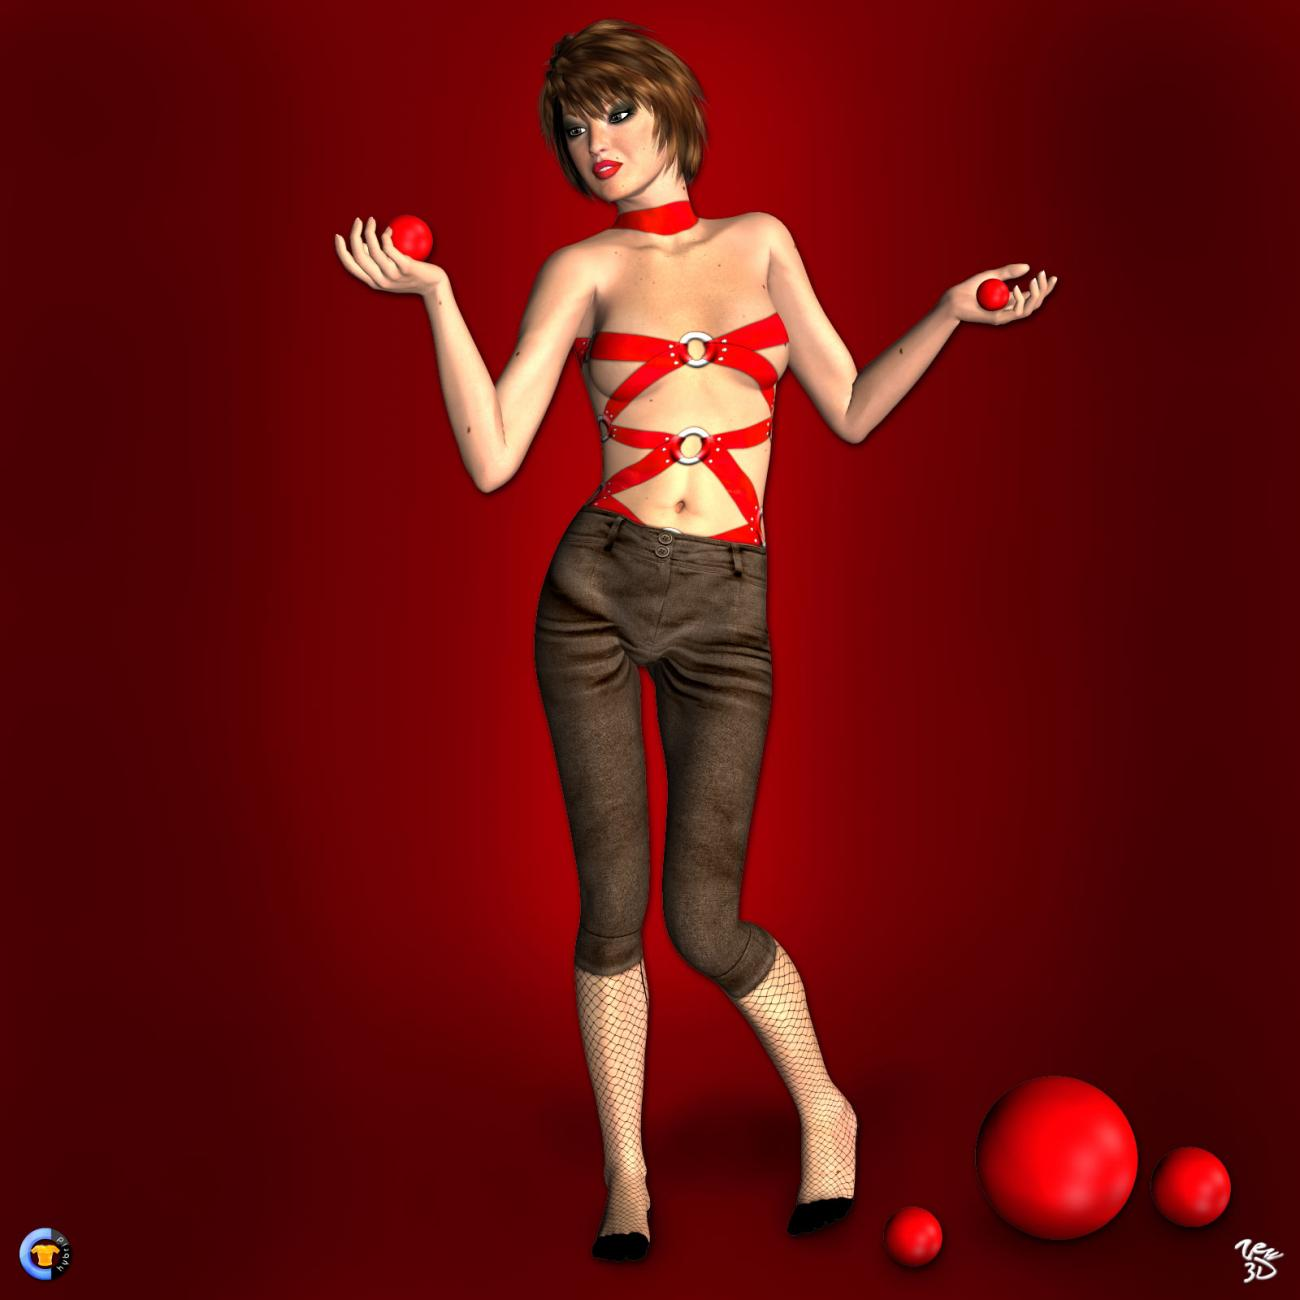 CLOTHER Hybrid - Lady in Red by zew3d